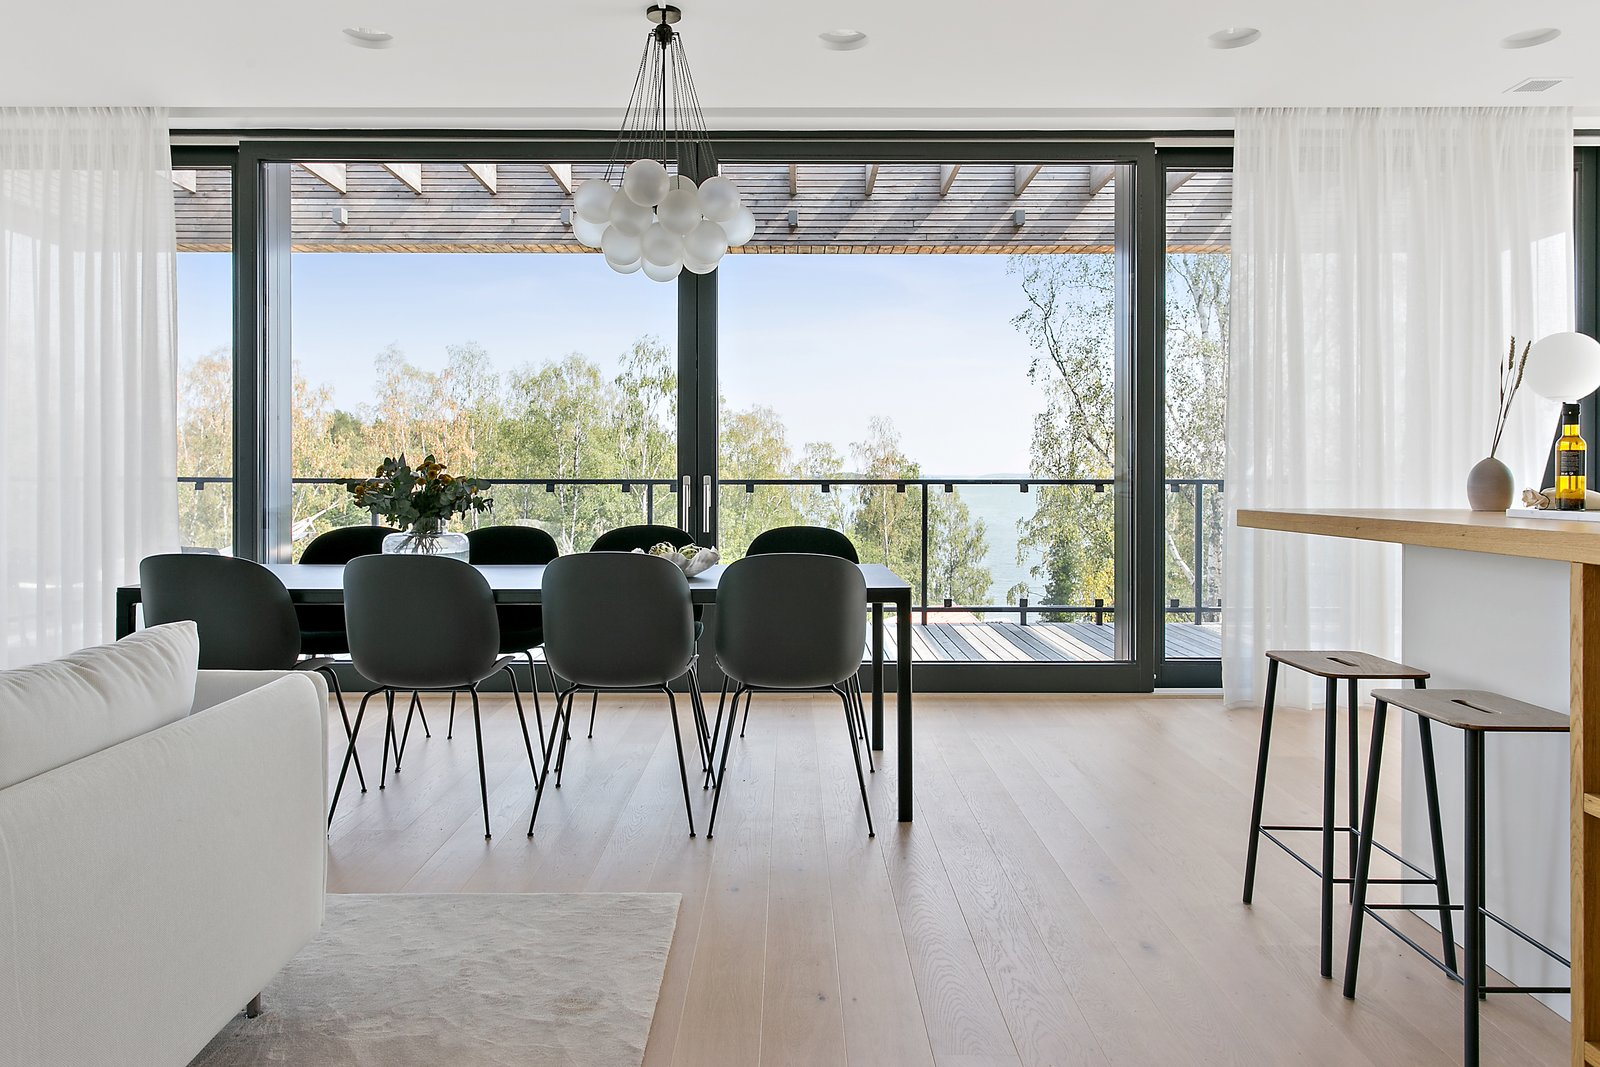 Dining, Pendant, Table, Light Hardwood, Chair, Stools, Rug, and Recessed The dining room table is perfectly positioned to enjoy the sweeping views of the Sörmlands archipelago.  Best Dining Table Recessed Stools Light Hardwood Photos from Picture Yourself  in This Clifftop Swedish Retreat Asking $1.08M